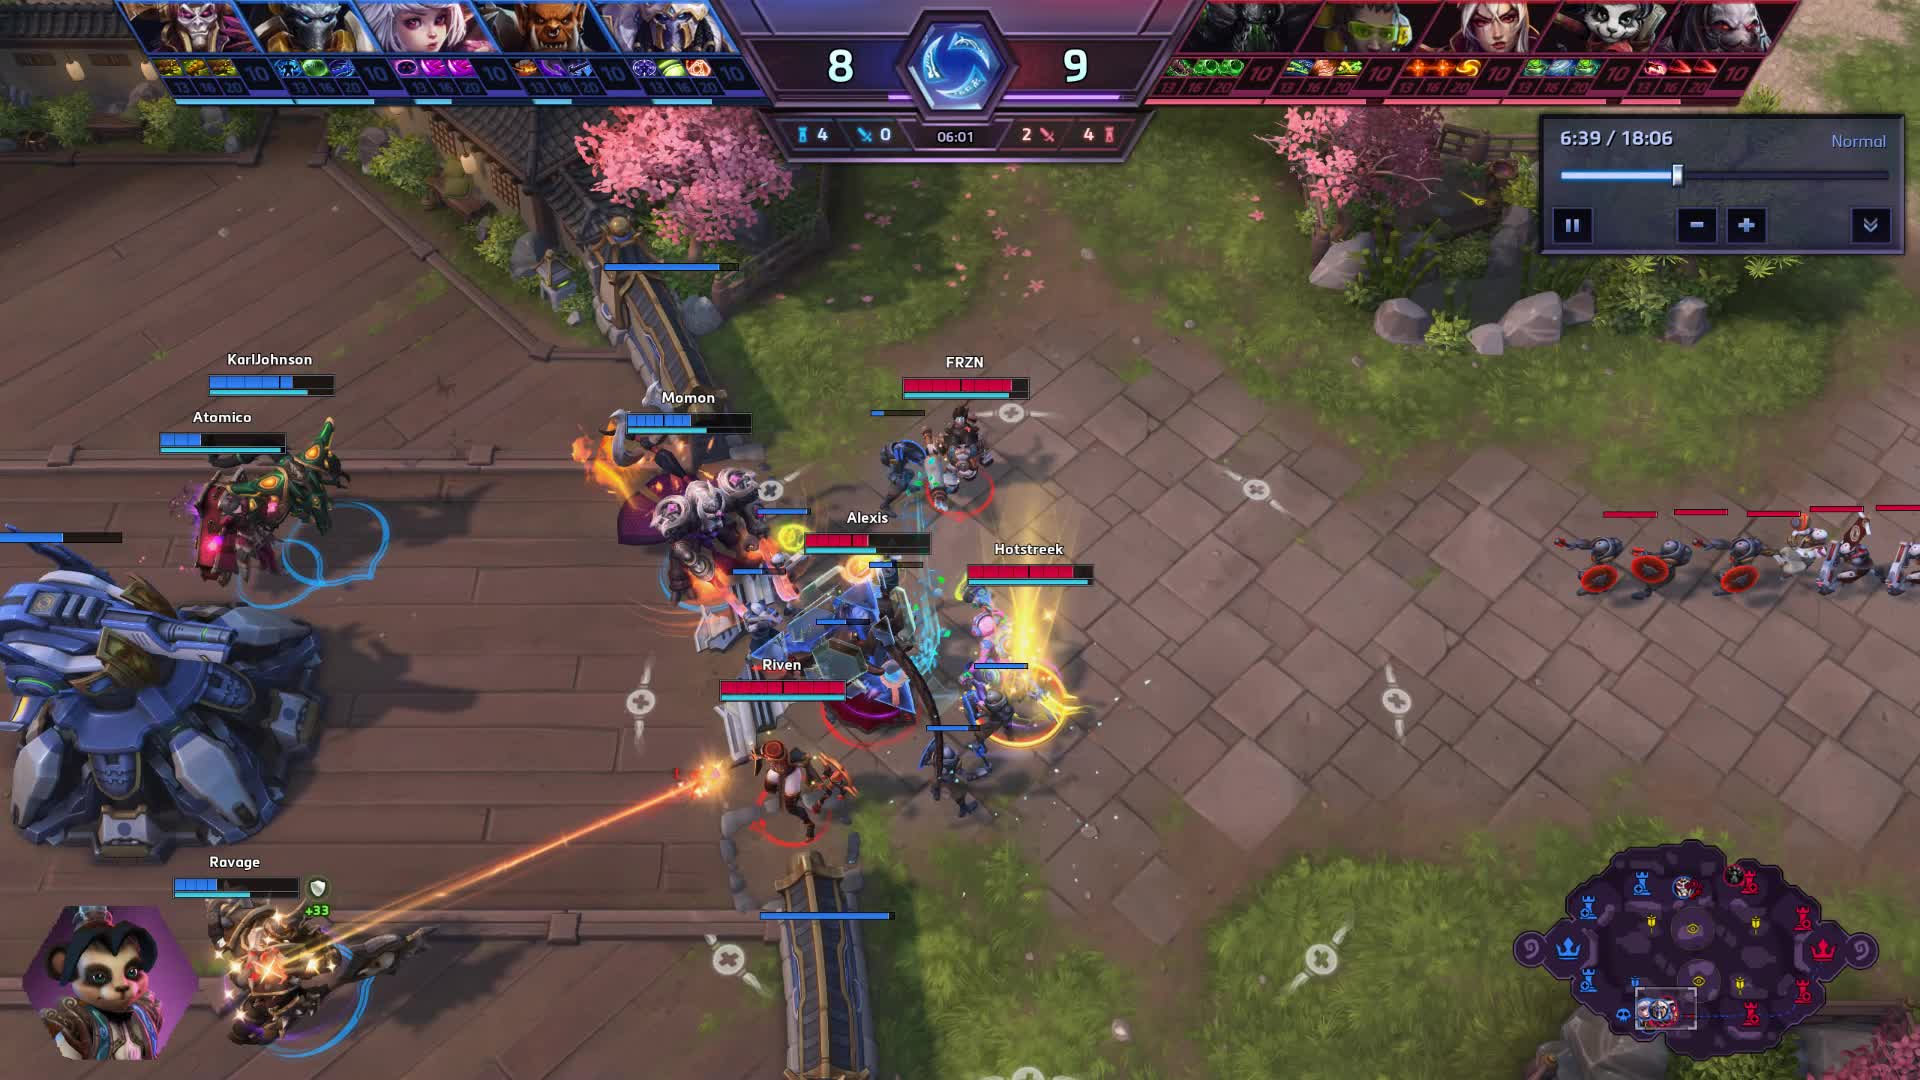 heroesofthestorm, Heroes of the Storm 2018.11.29 - 23.14.43.01 GIFs